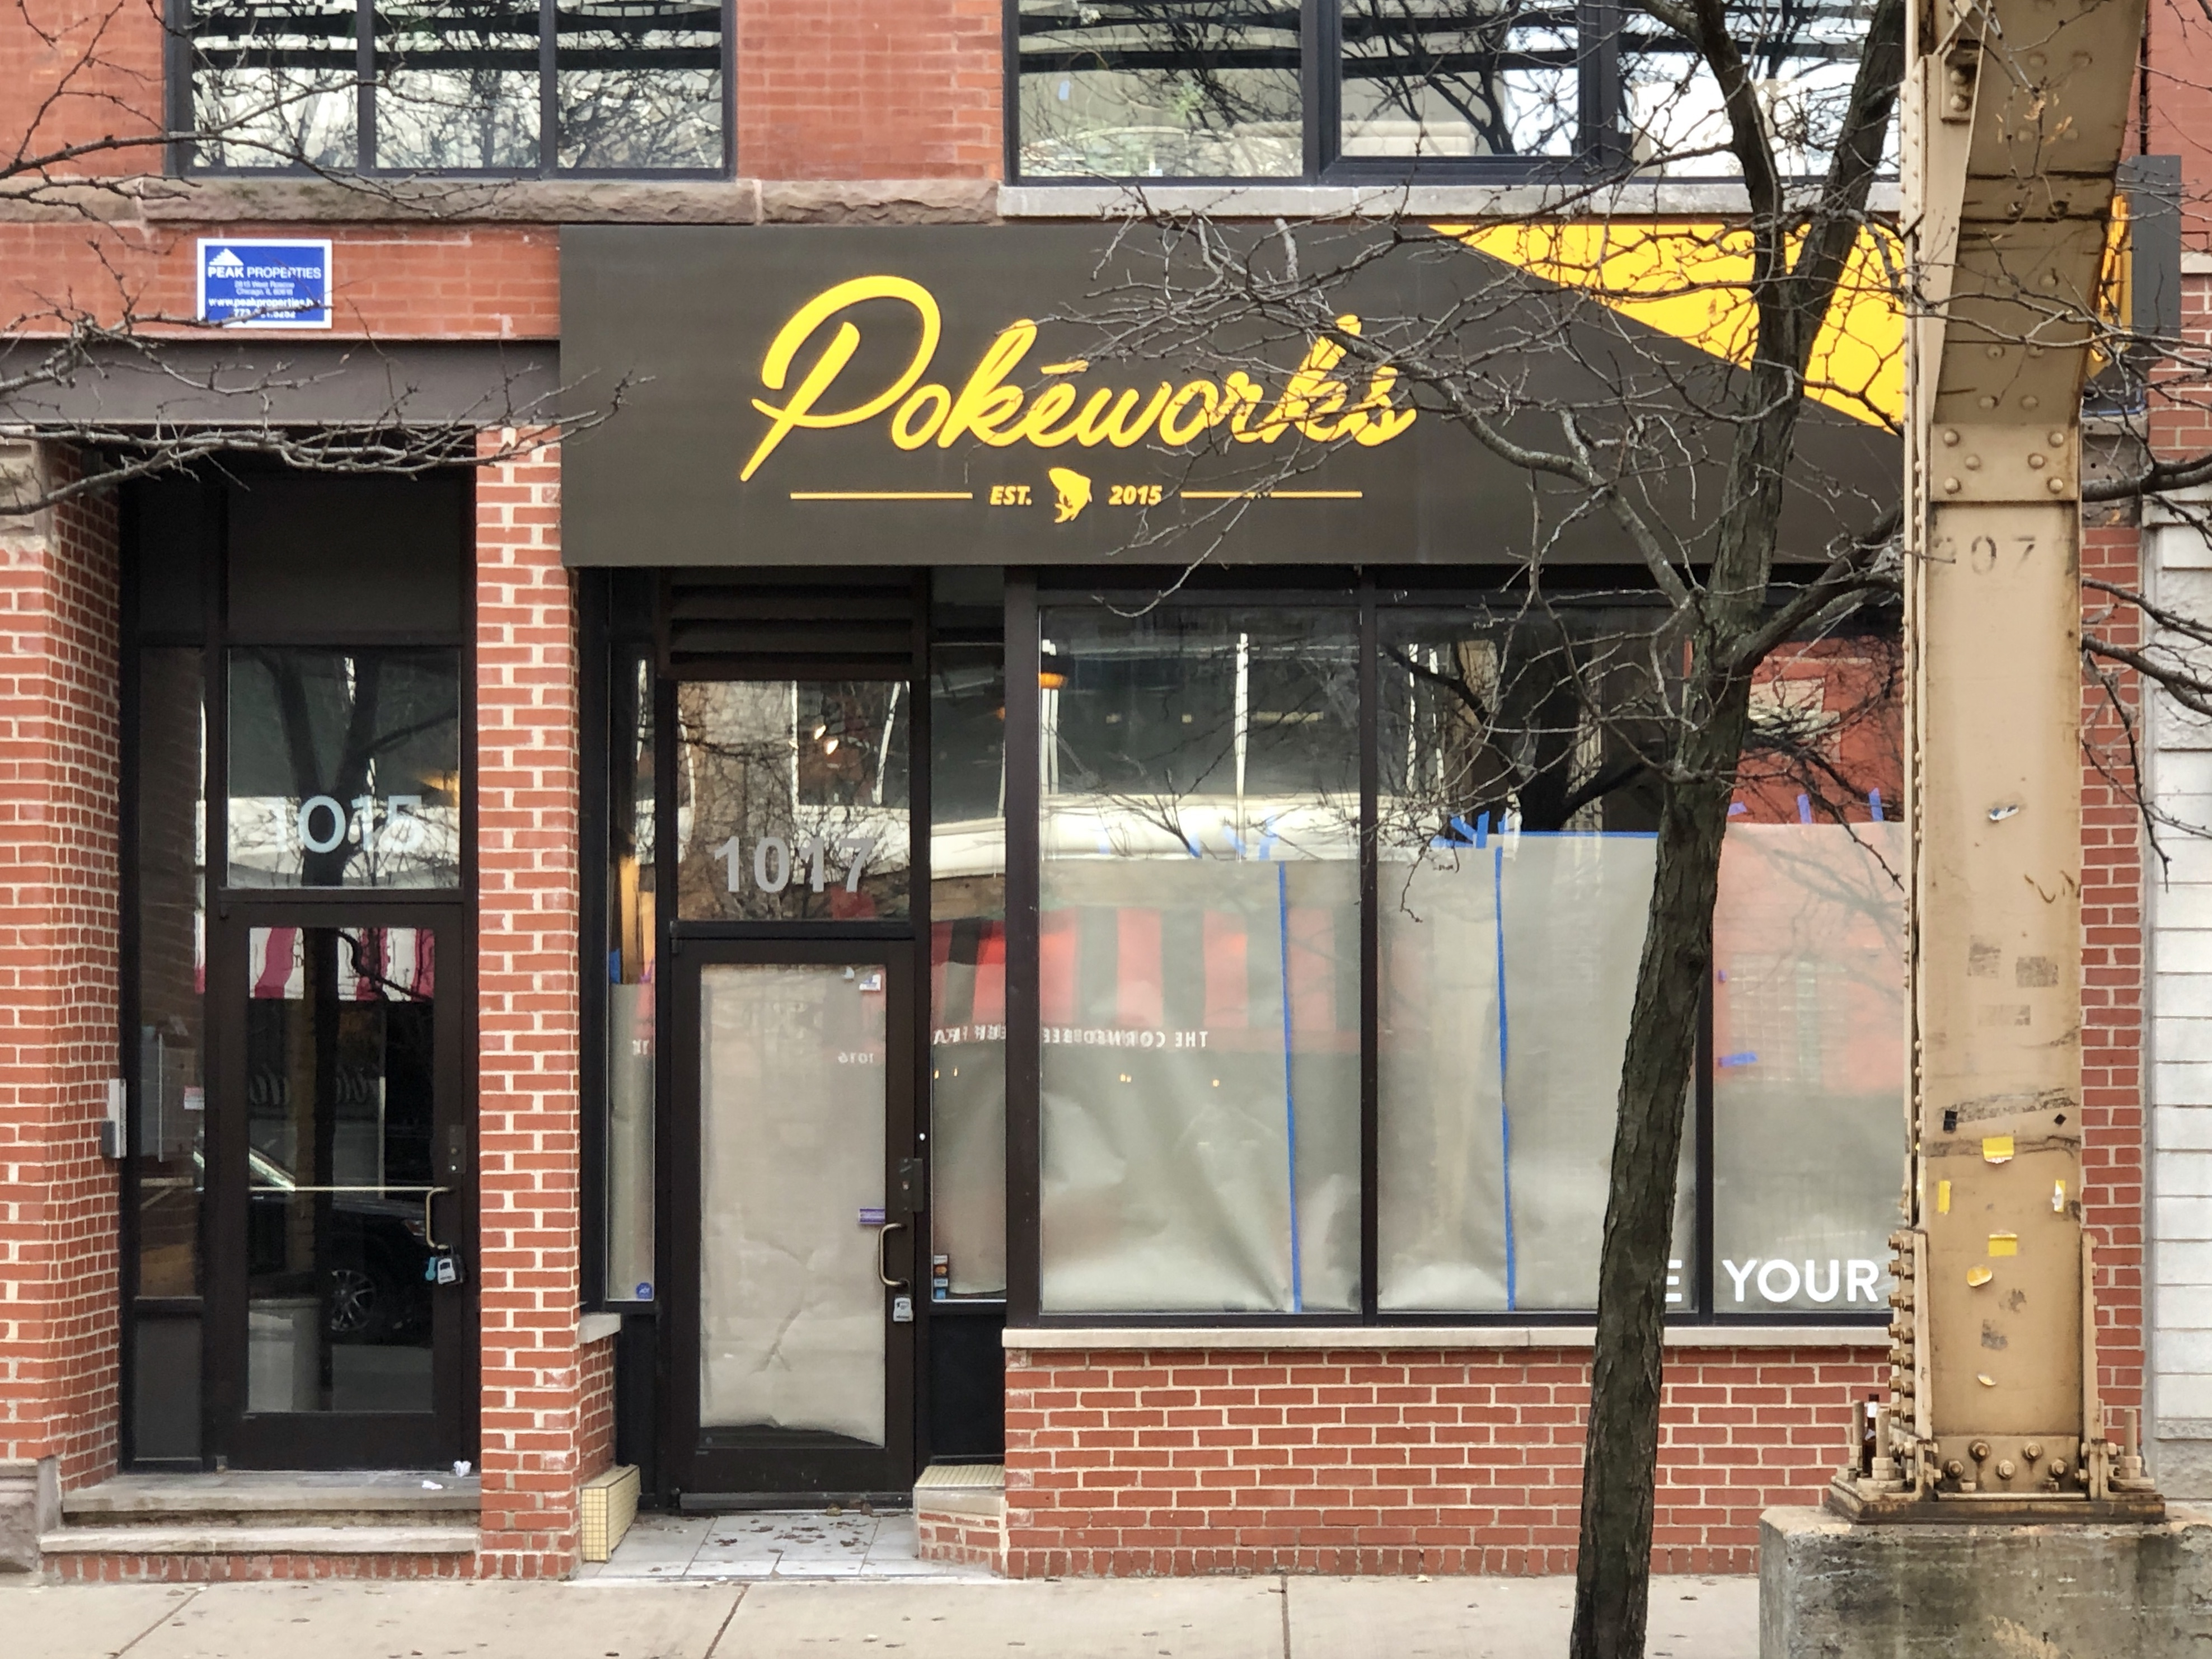 A papered-up storefront with a brown and yellow sign and windows.